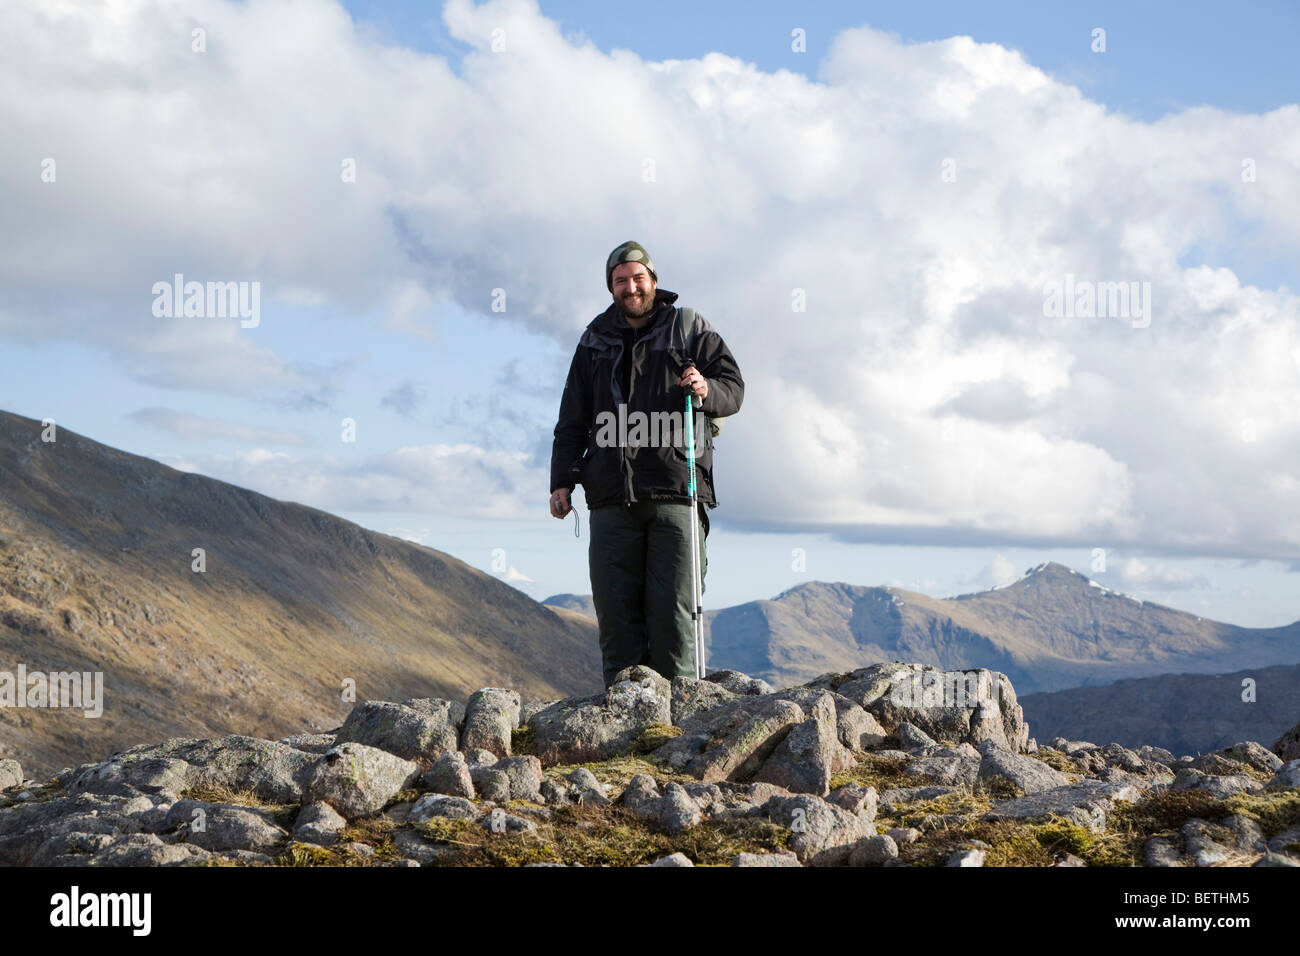 On top of the mountain - Stock Image